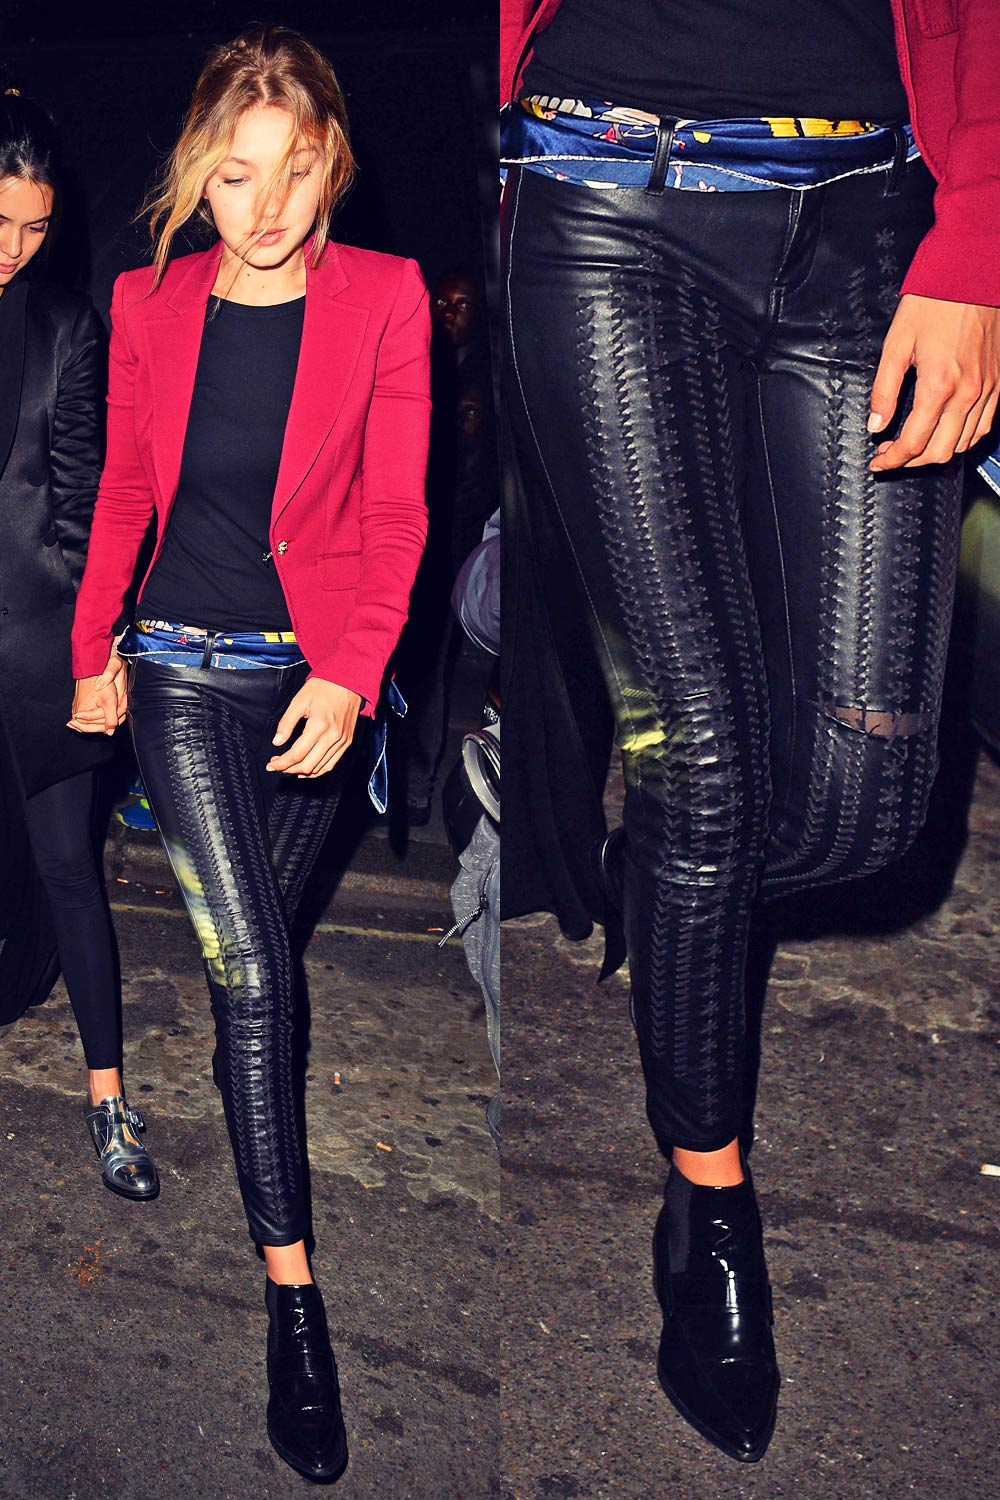 Gigi Hadid seen leaving Libertine nightclub